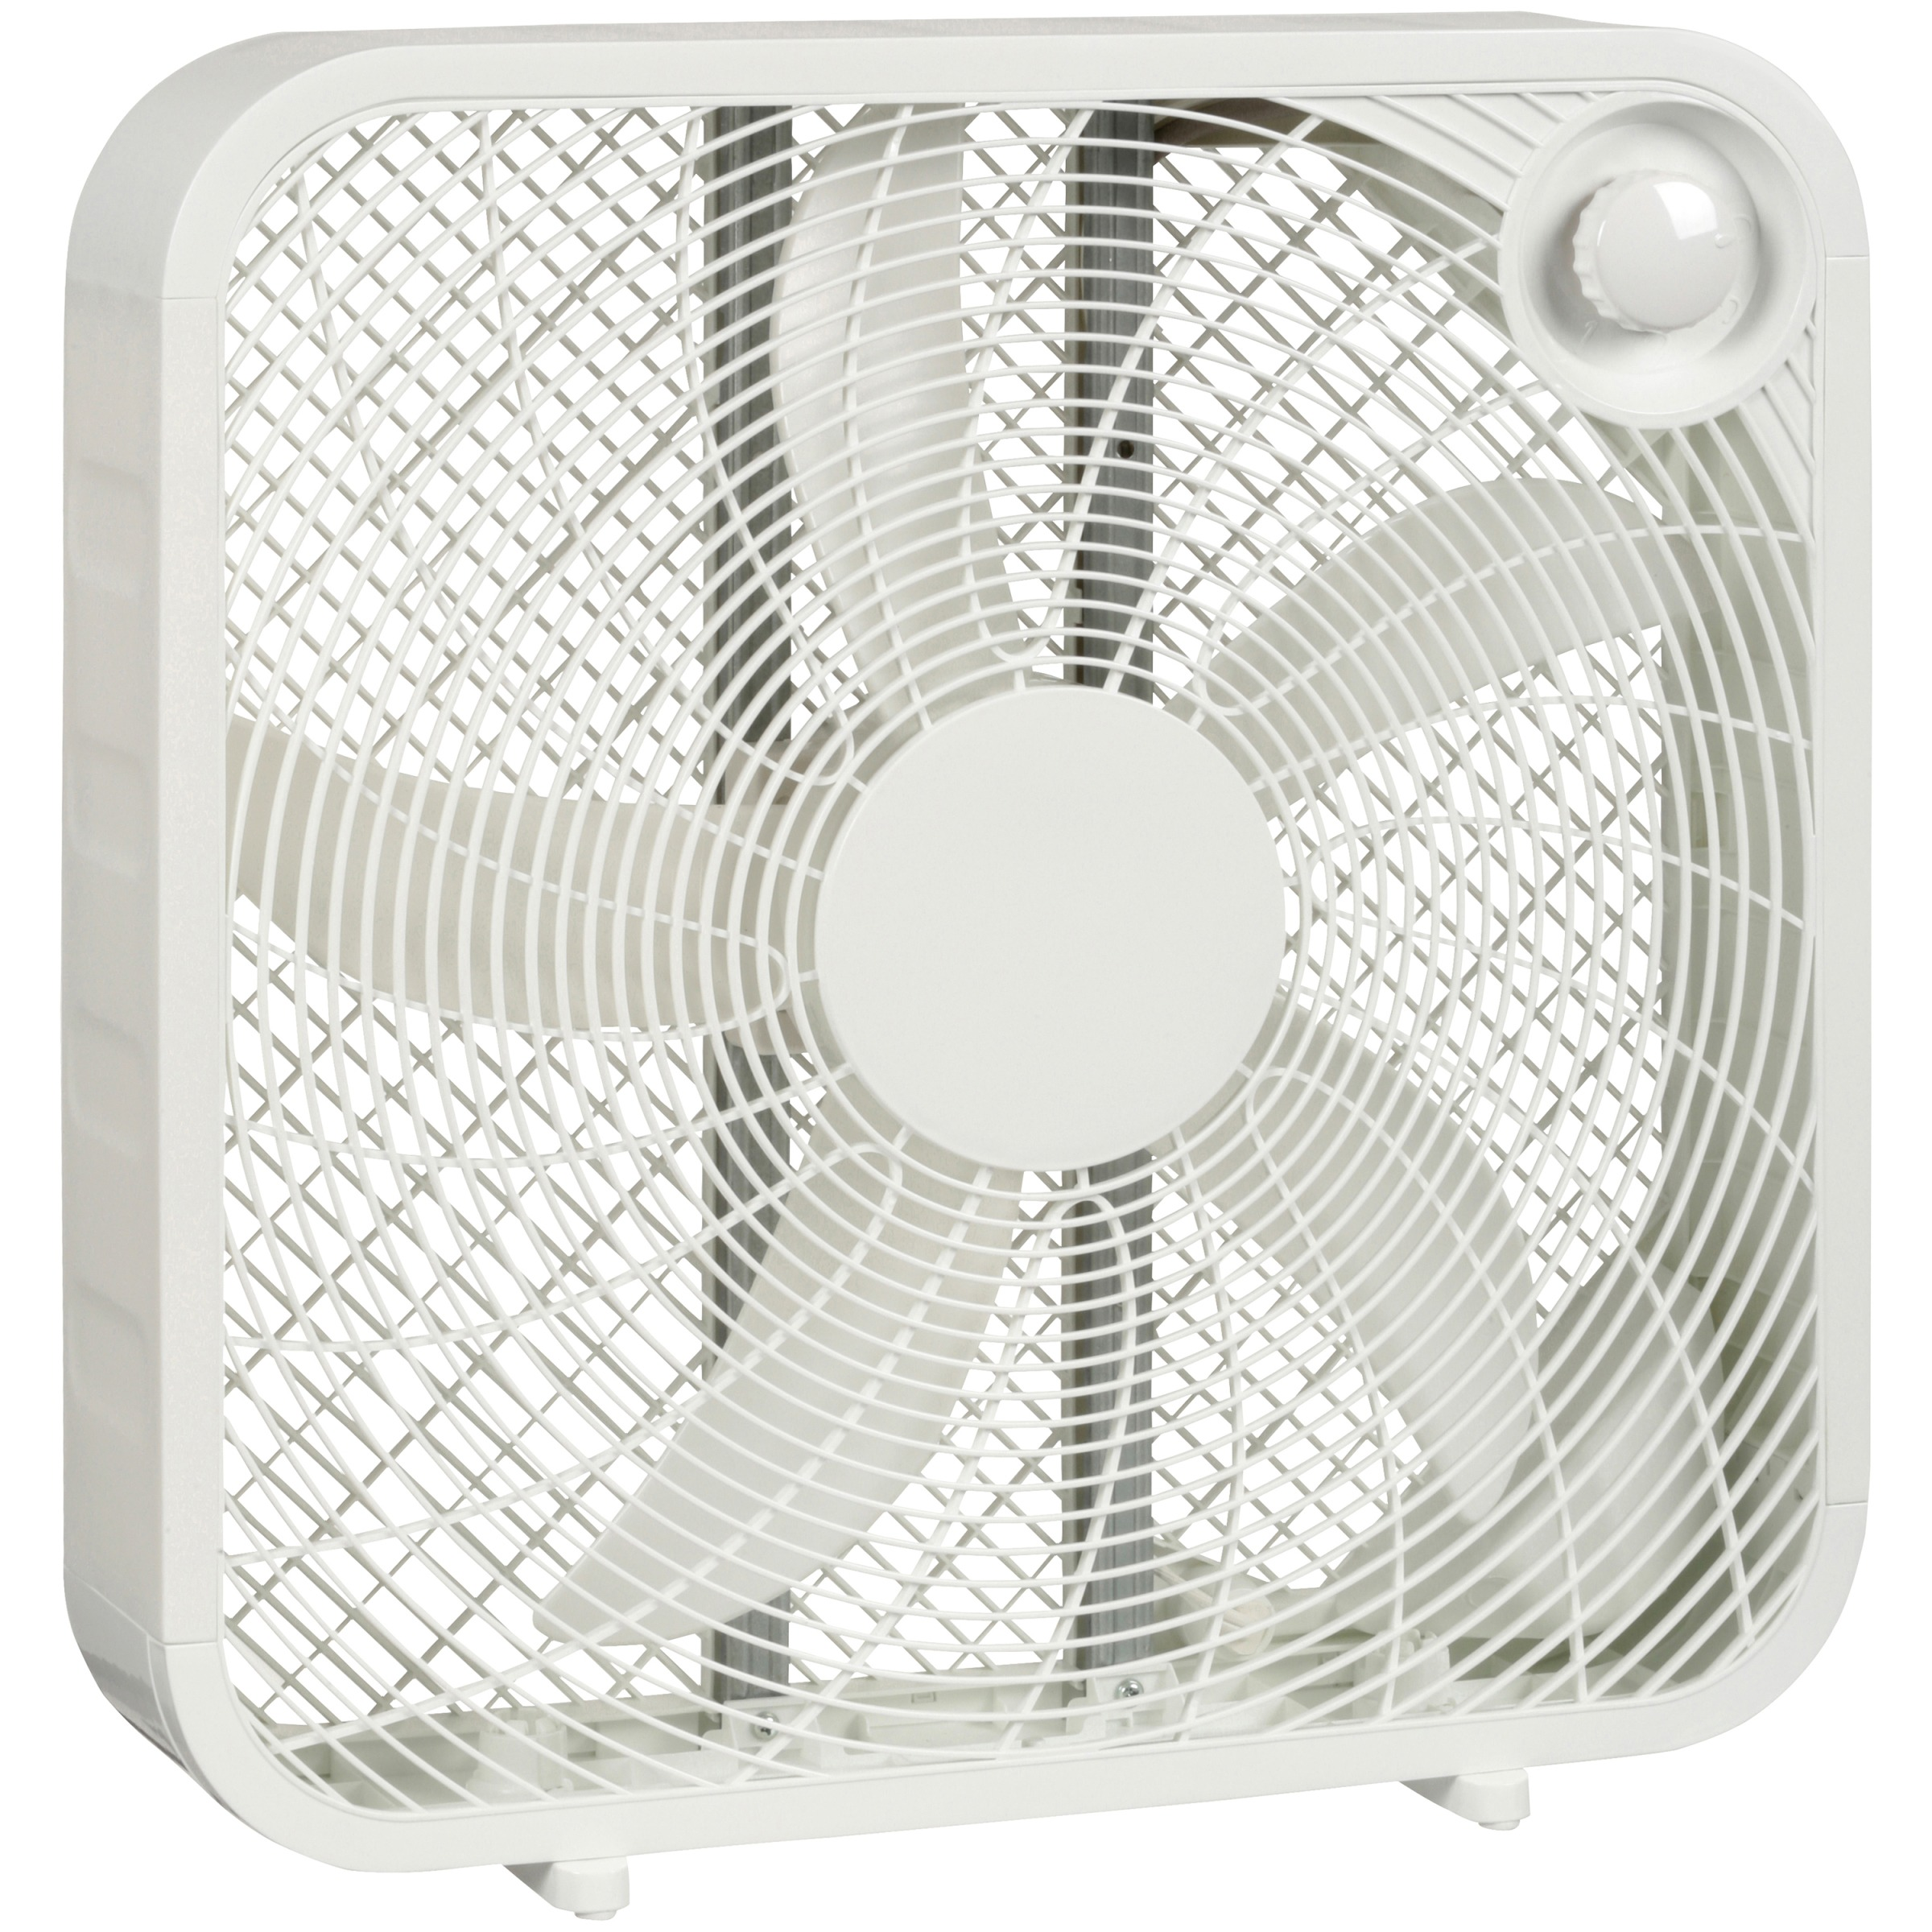 Lasko Box Fan Fuse Free Wiring Diagram For You Pedestal Trusted Diagrams Thermal Lakewood